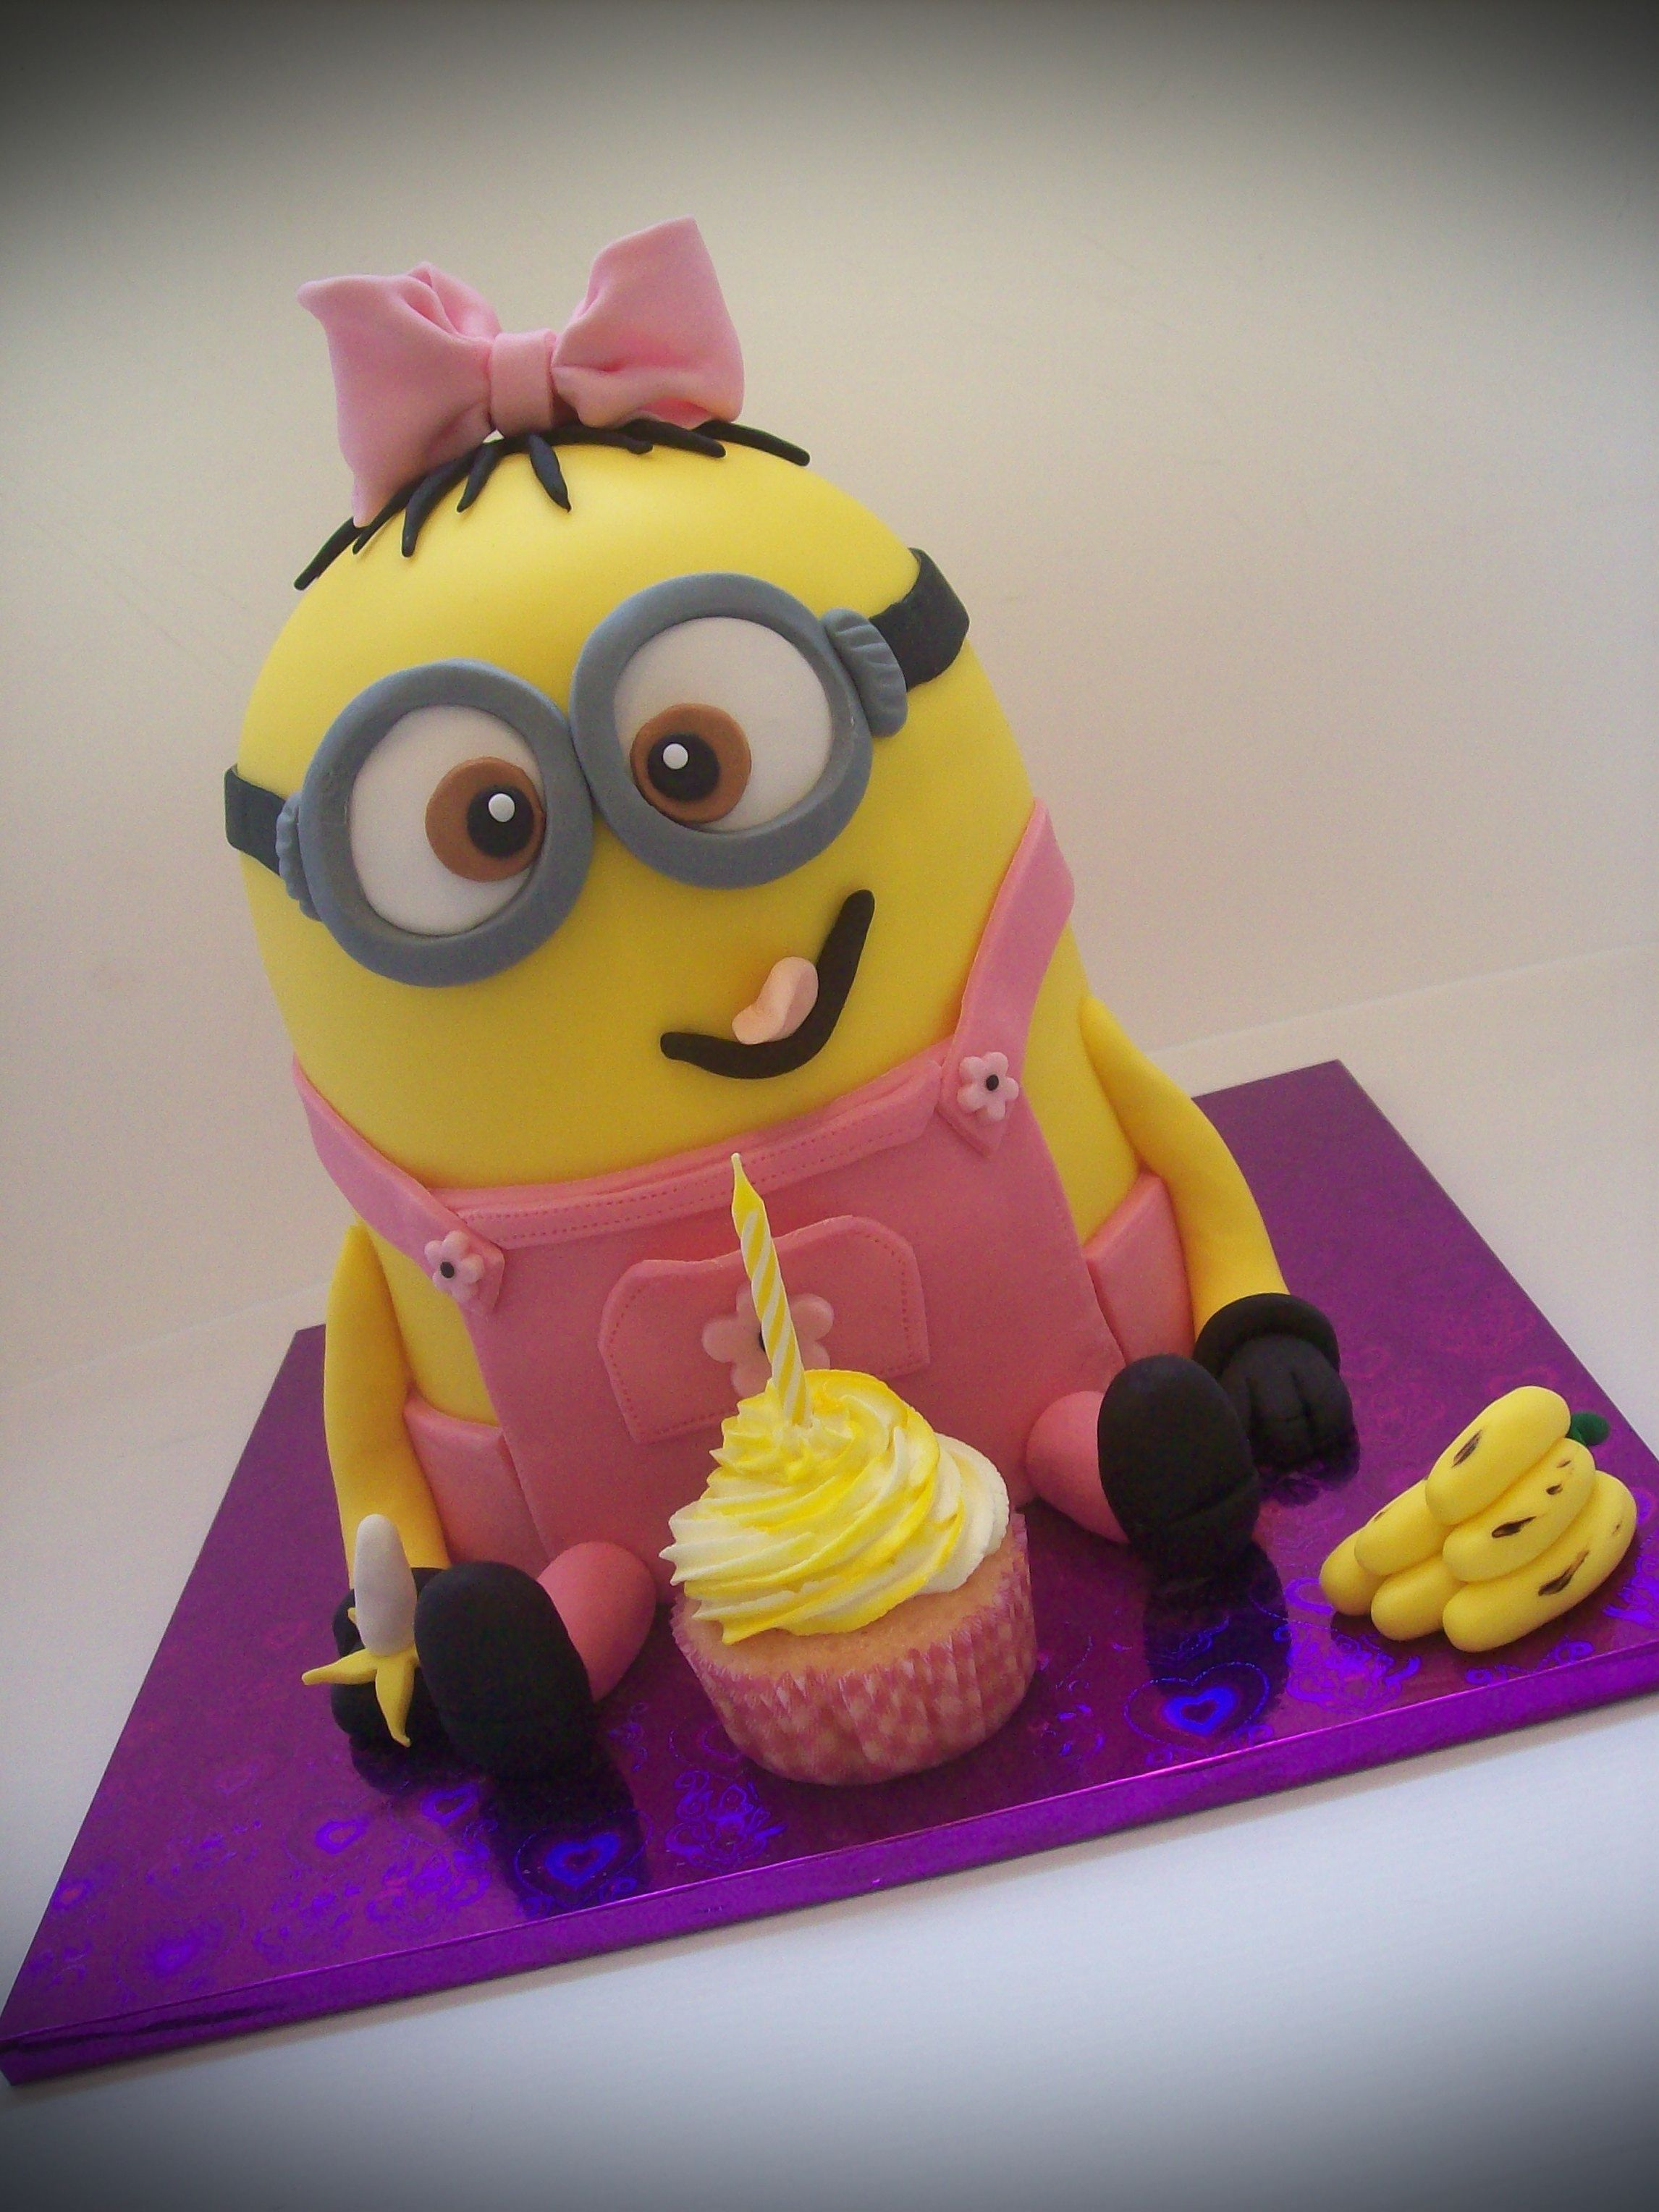 Minion Birthday Cakes For Girls Cakes and cupcakes Pinterest